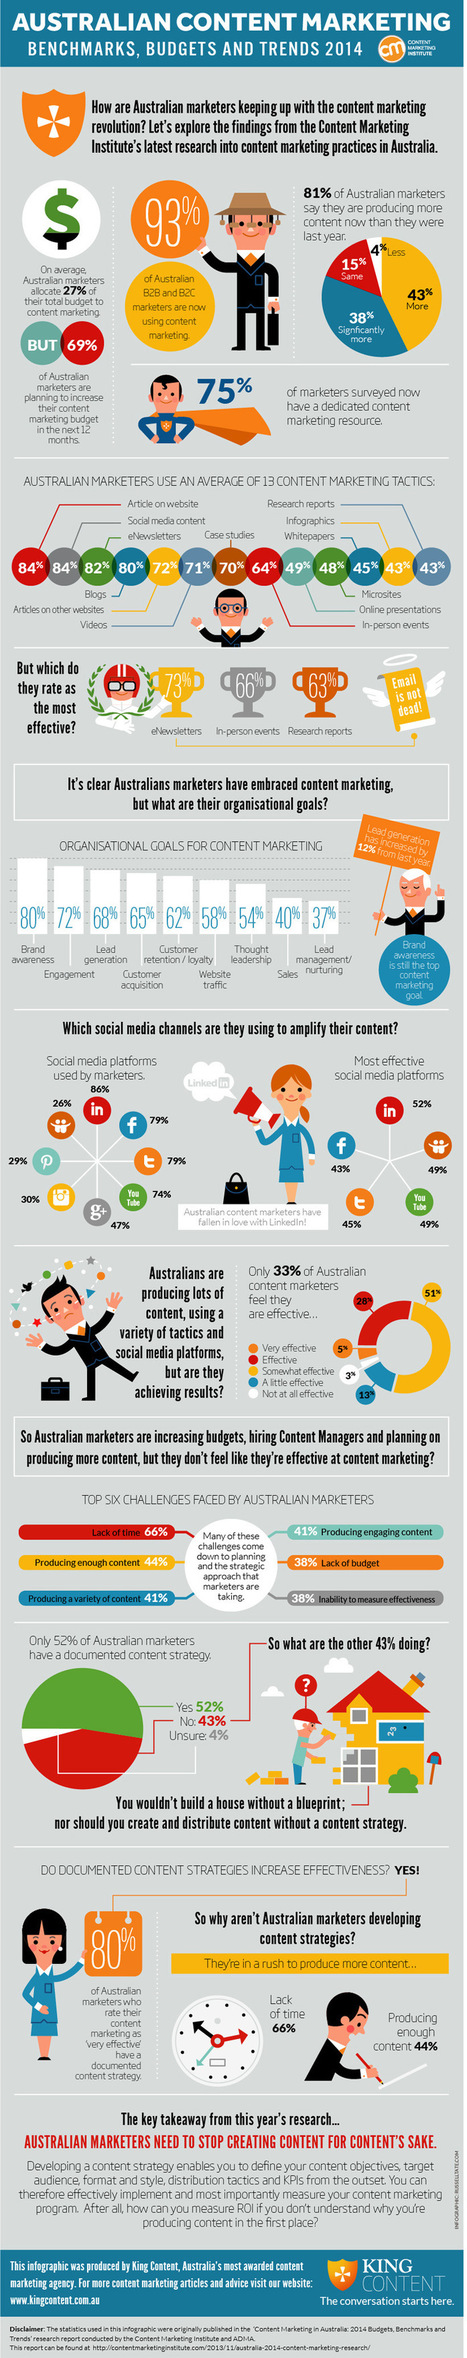 Australian Content Marketing – Benchmarks, Budget and Trends 2014 [Infographic] | Digital-News on Scoop.it today | Scoop.it